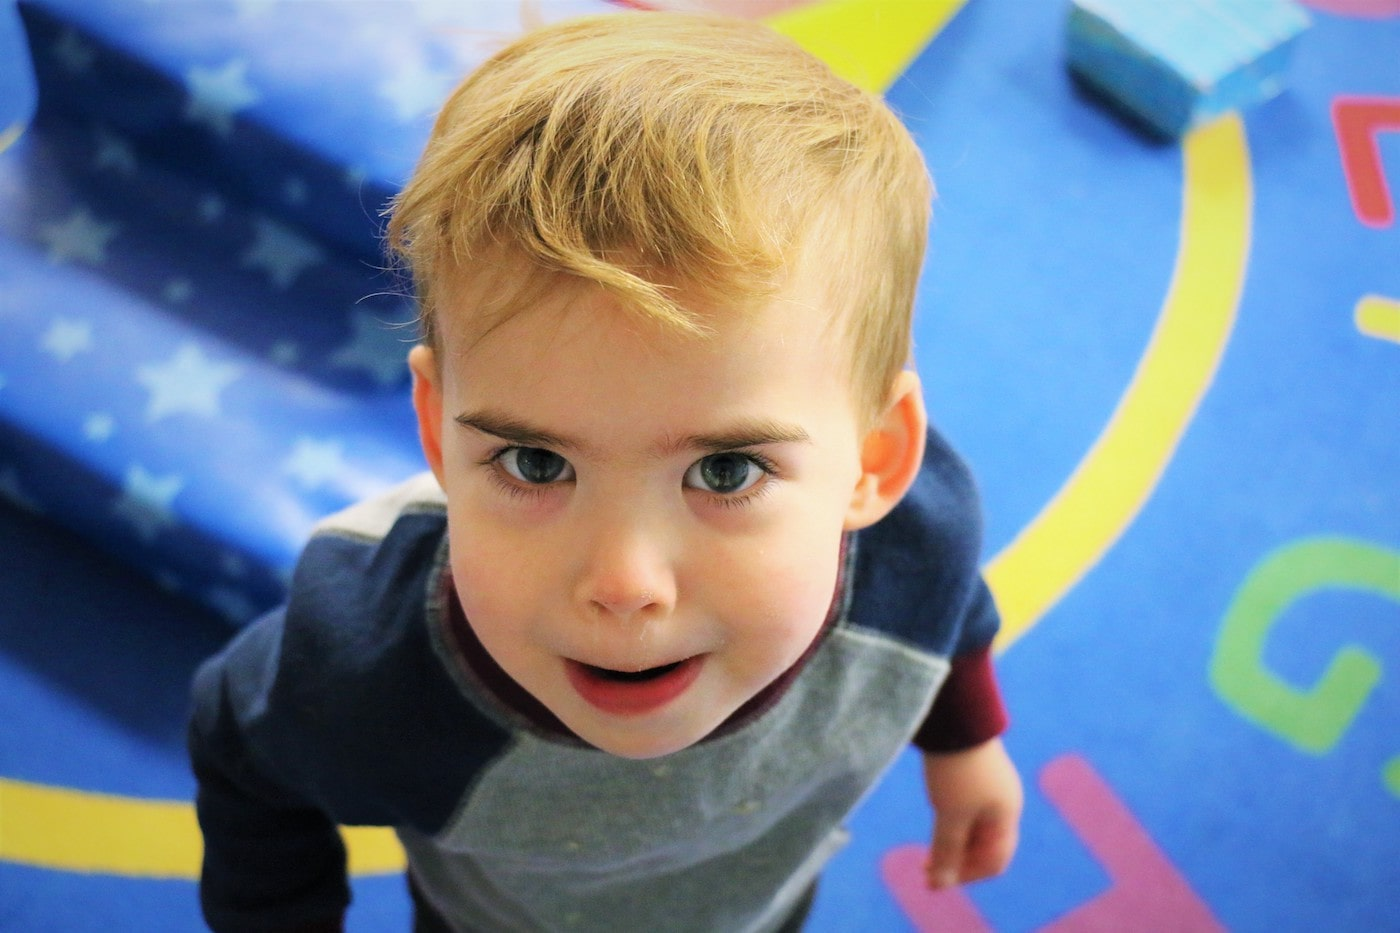 A young boy looking up at the camera.